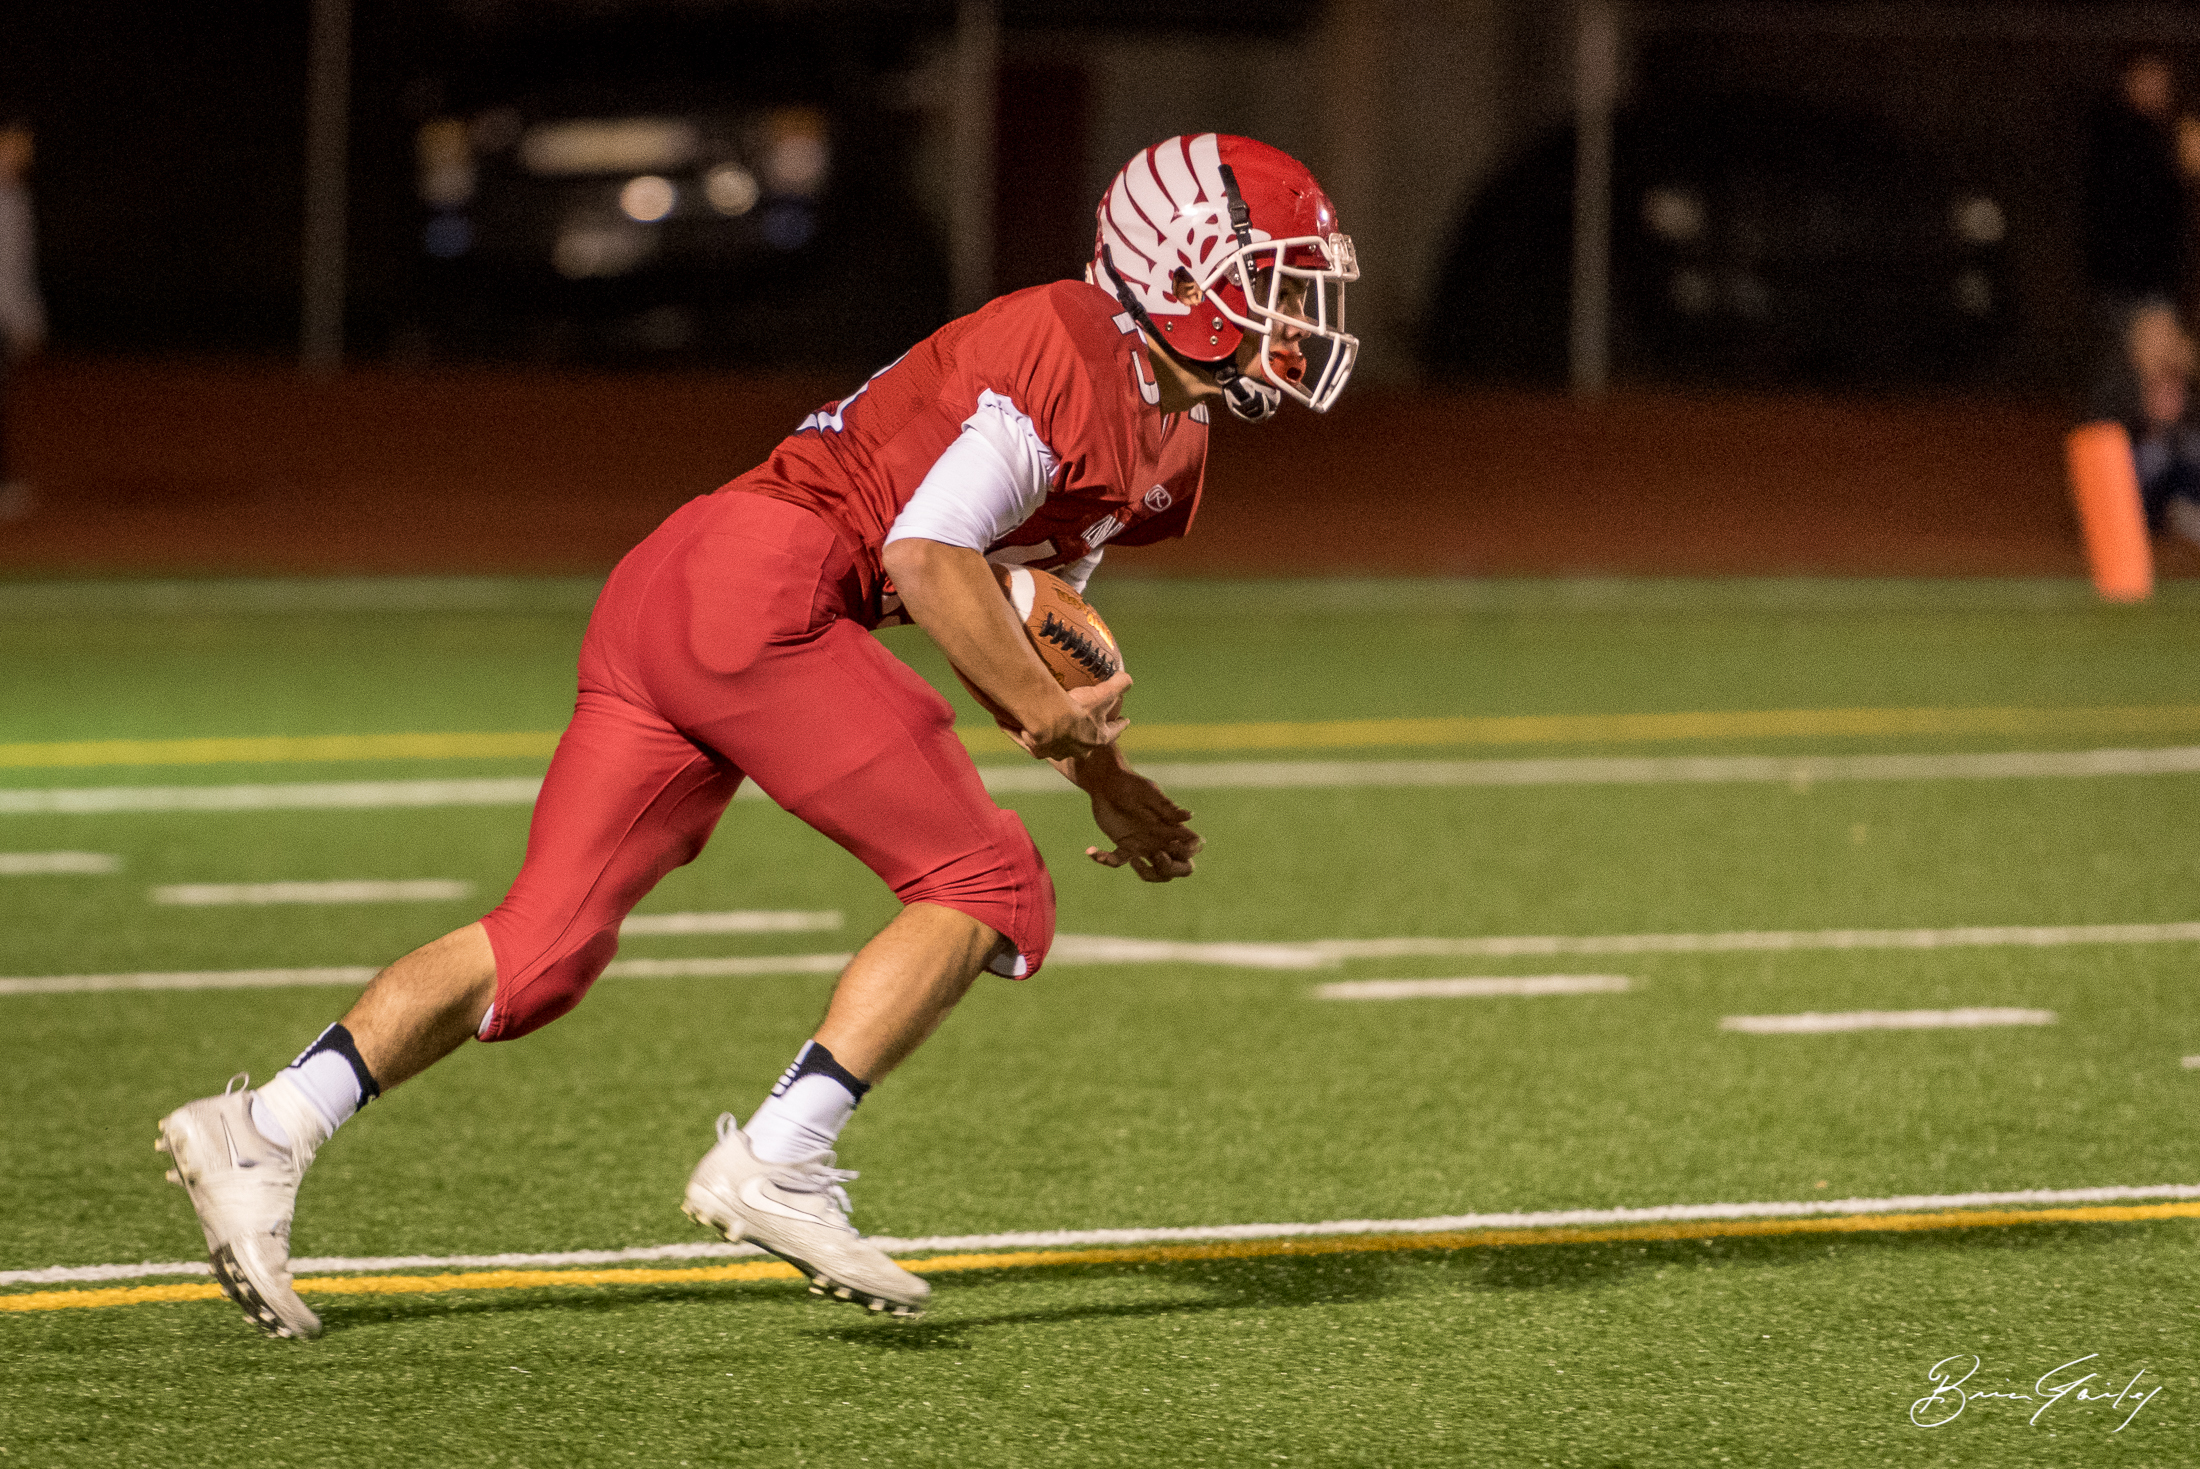 The Klamath Union kick returner only fielded a few returns thanks to the relentless pursuit of onside kicks from Henley.